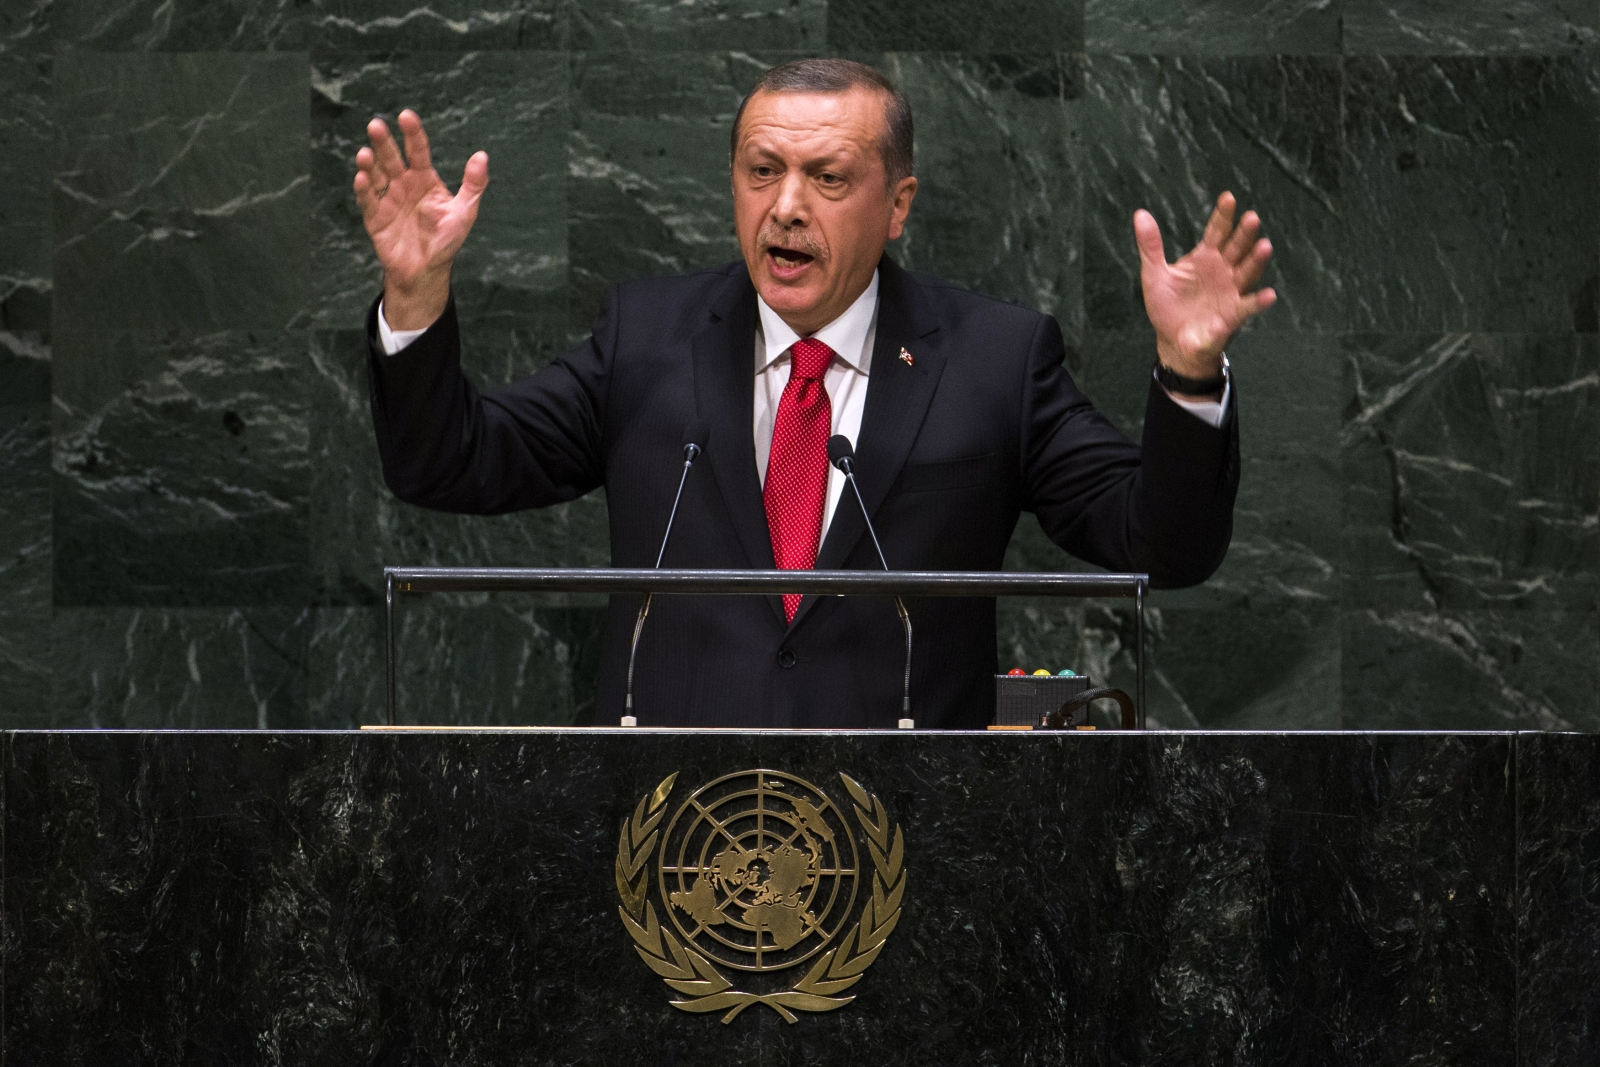 Turkey's President Recep Tayyip Erdogan addresses the 69th United Nations General Assembly at the UN headquarters in New York